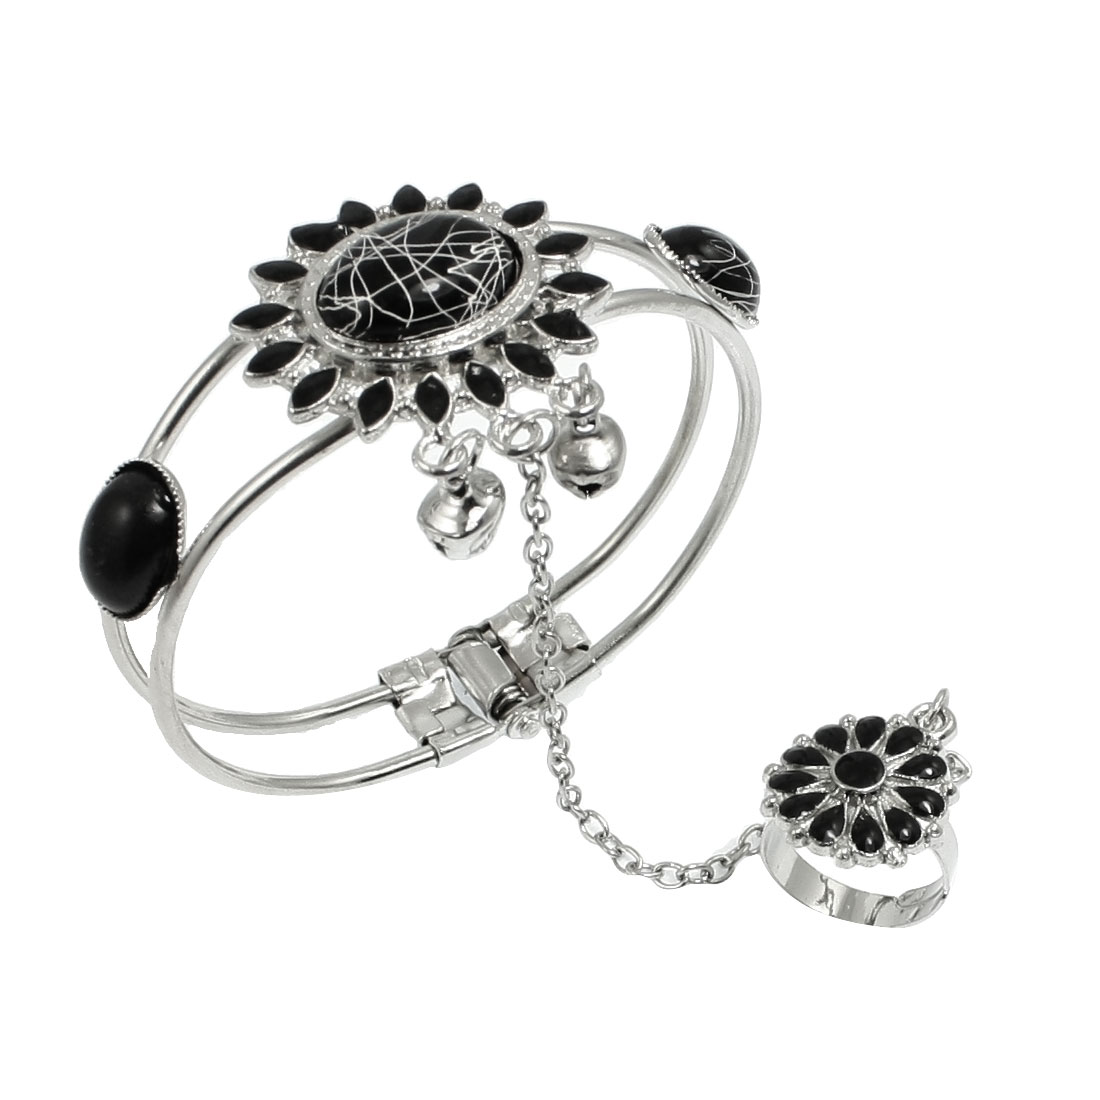 Ladies Black Oval Beads Inlaid Silver Tone Chain Finger Ring Bracelet